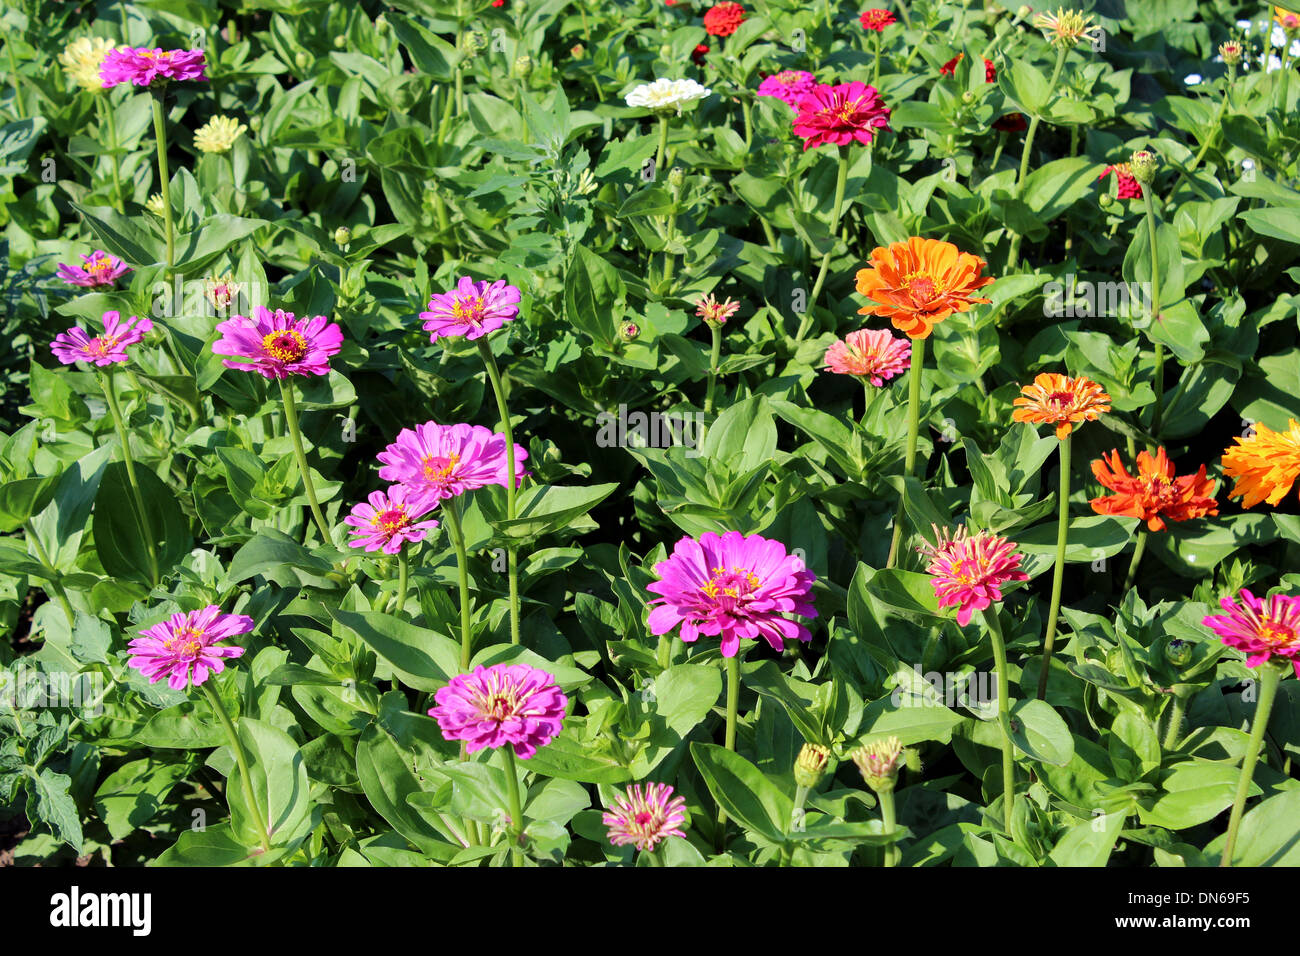 Many different beautiful flowers on the flower bed stock photo many different beautiful flowers on the flower bed izmirmasajfo